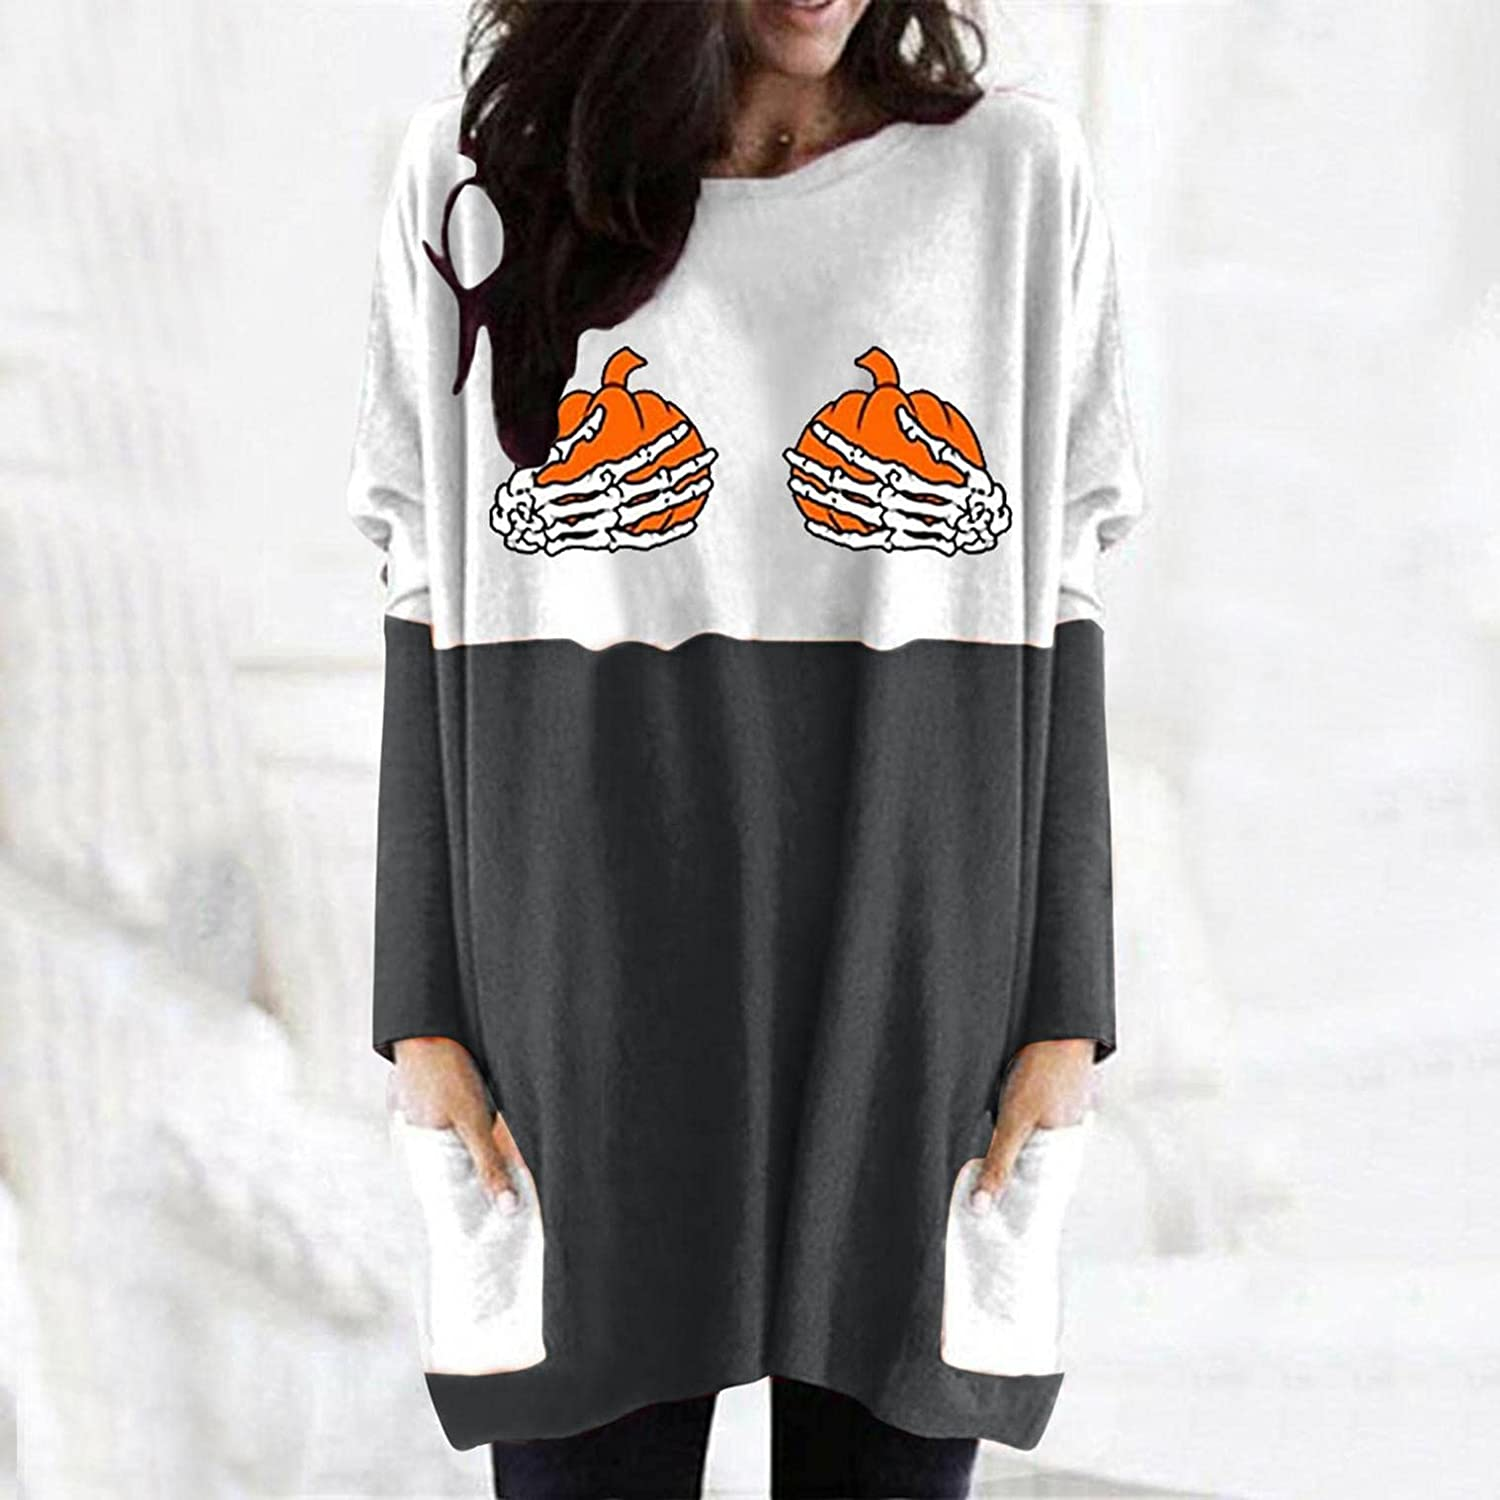 Jaqqra Halloween Sweatshirts for Women Casual Pullover with Pockets Pumpkin Print Long Sleeve Tunic Shirts Blouse Tops